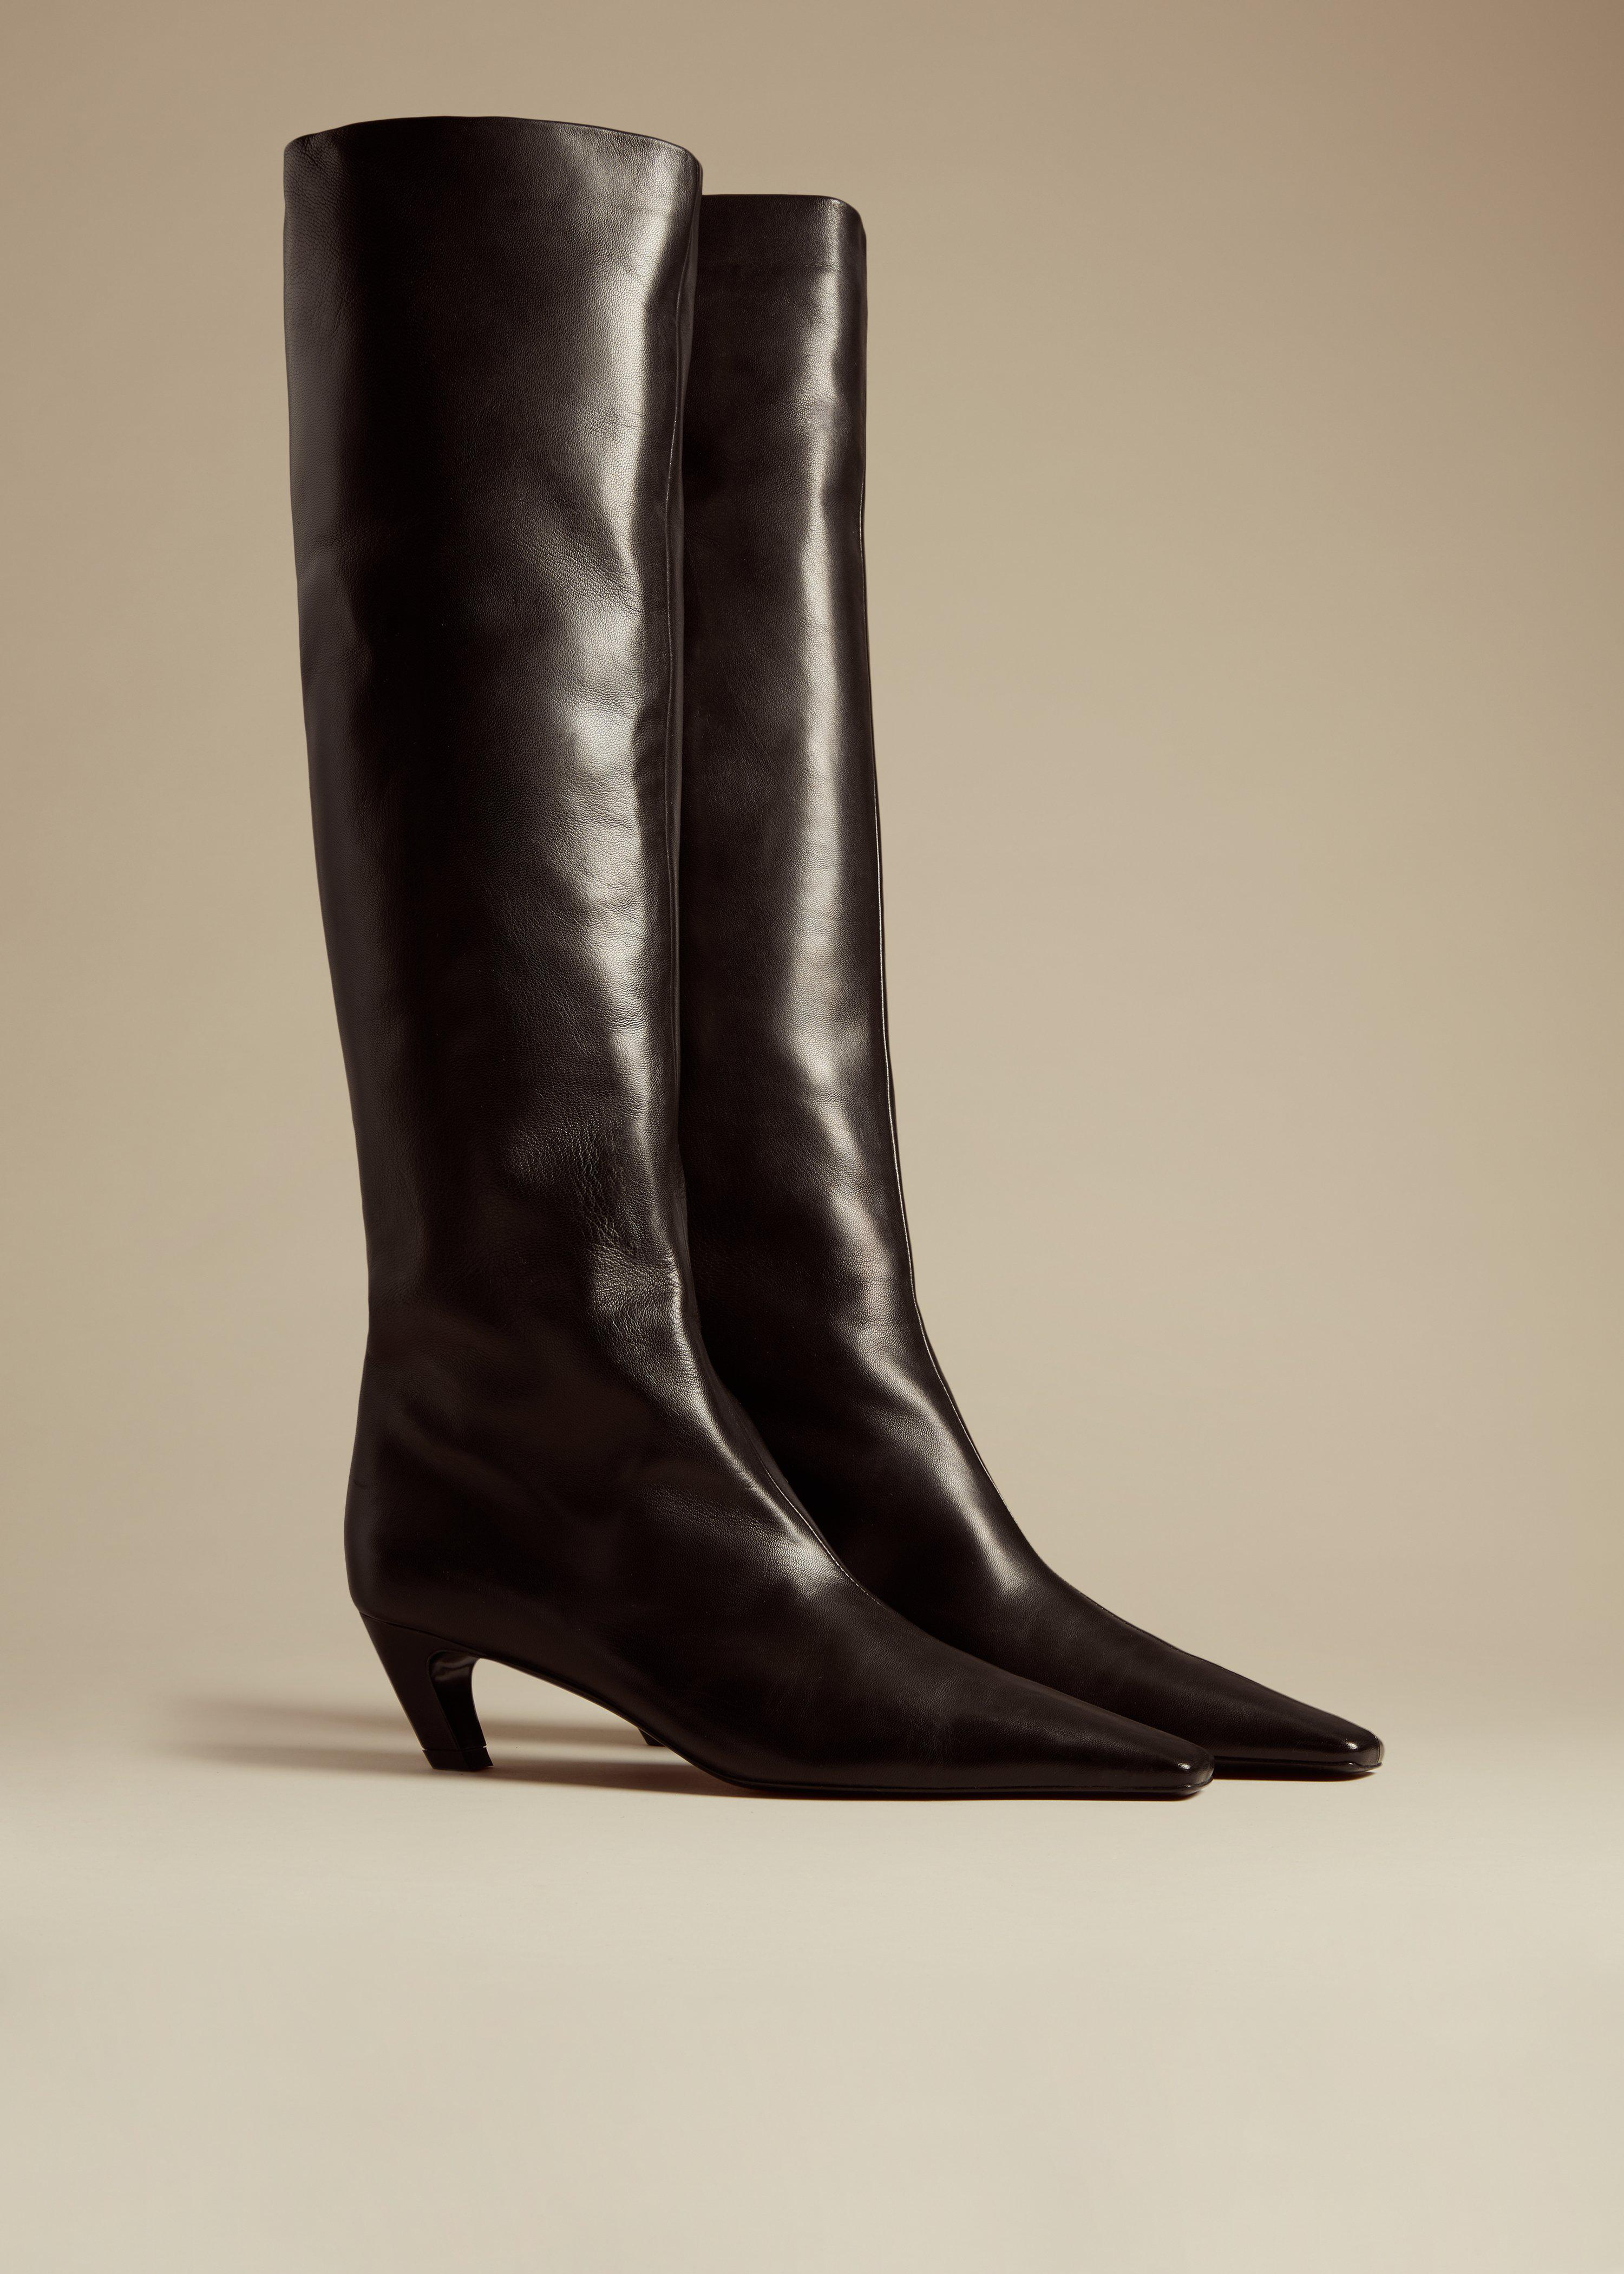 The Davis Boot in Black Leather